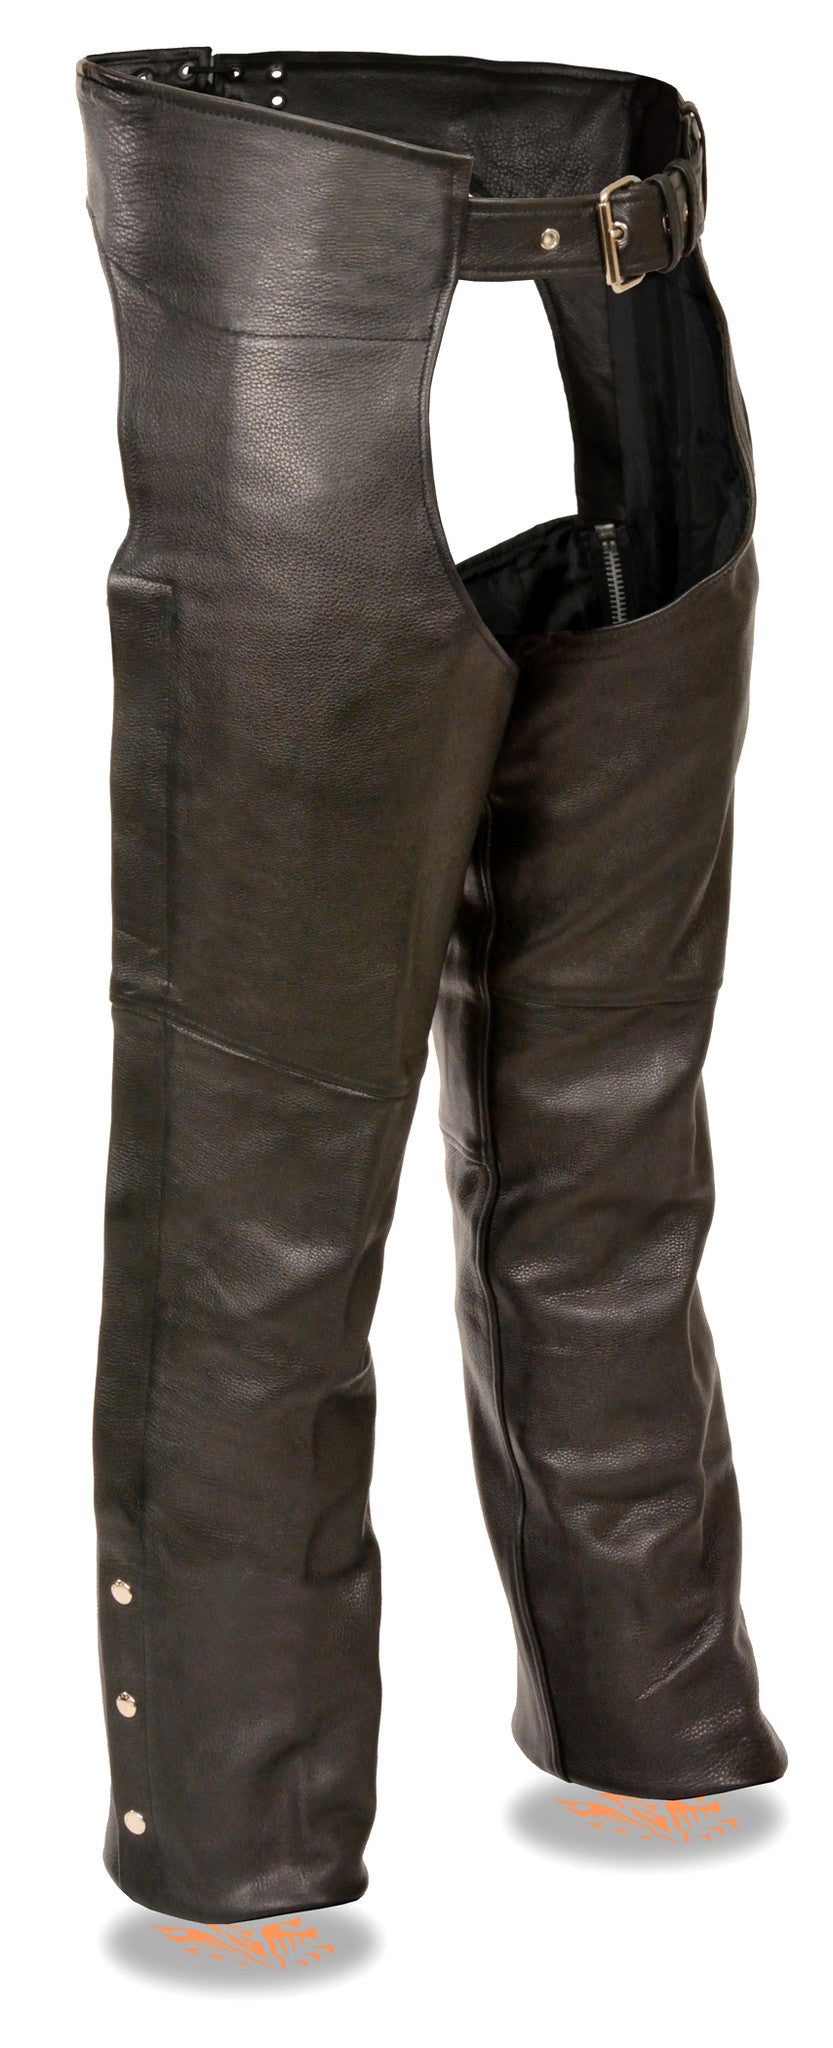 MEN'S MOTORCYCLE CLASSIC LEATHER RIDING CHAP